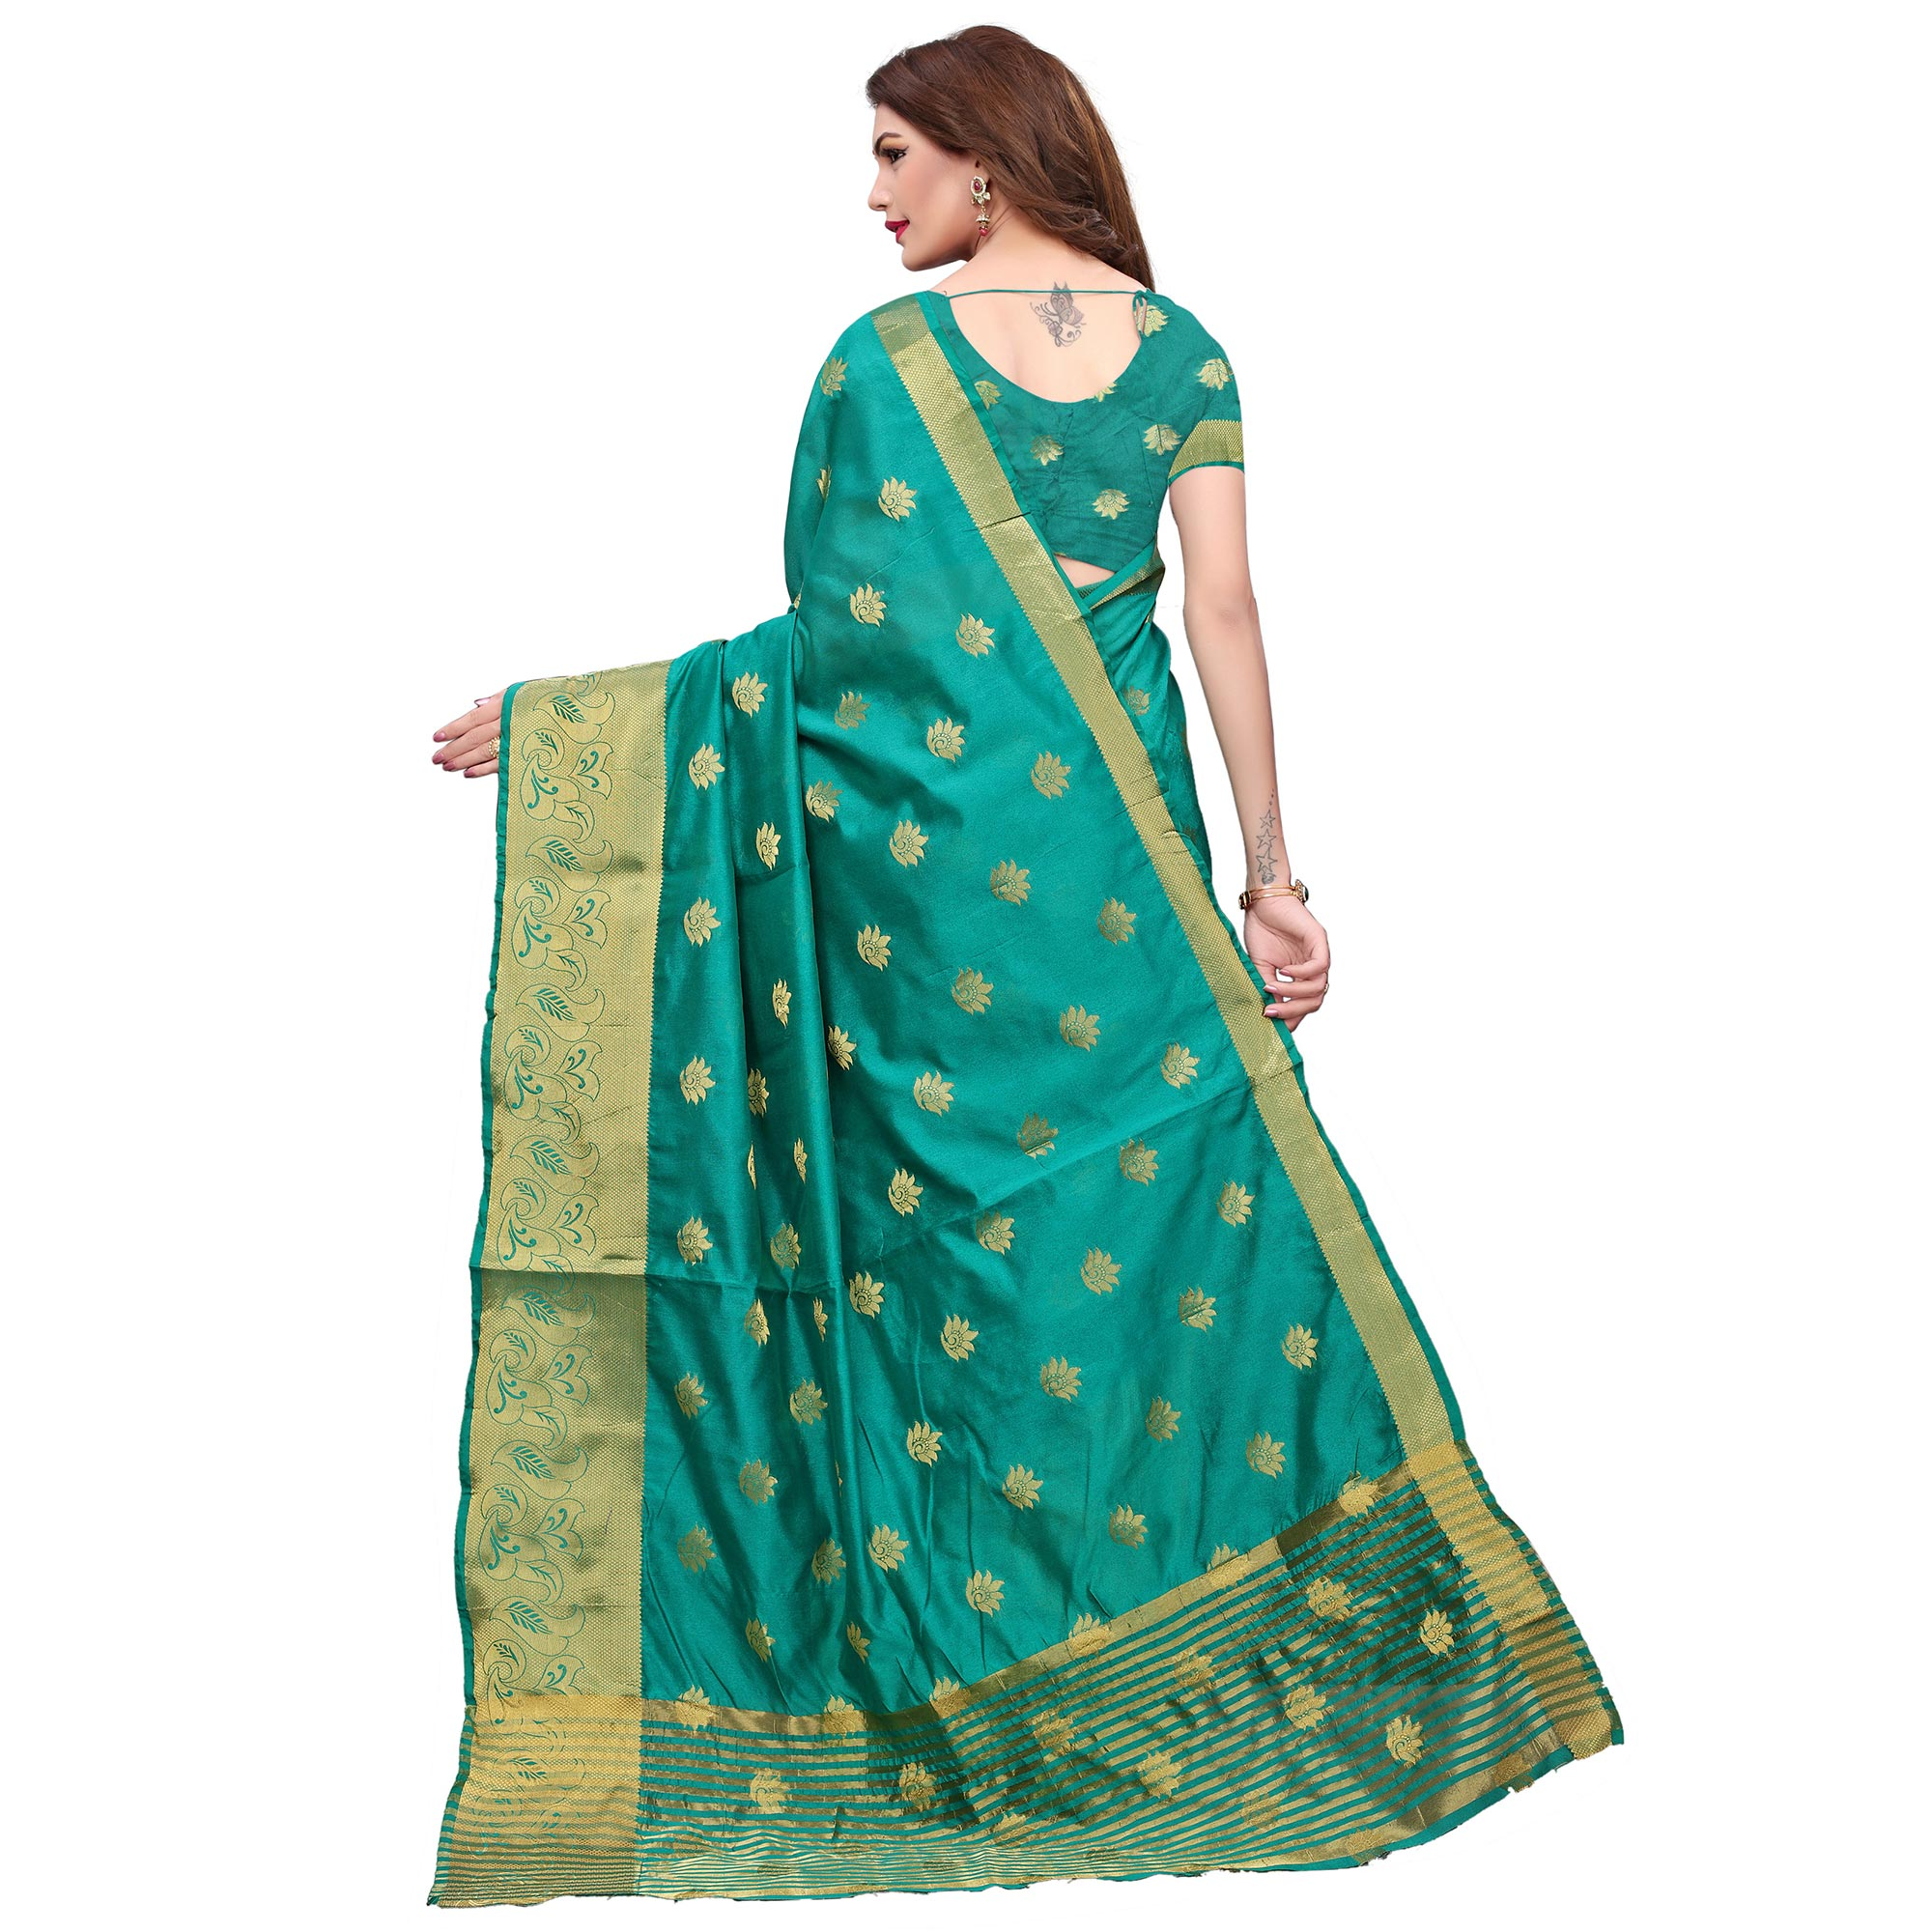 Refreshing Turquoise Green Colored Casual Printed Kanjivaram Silk Saree